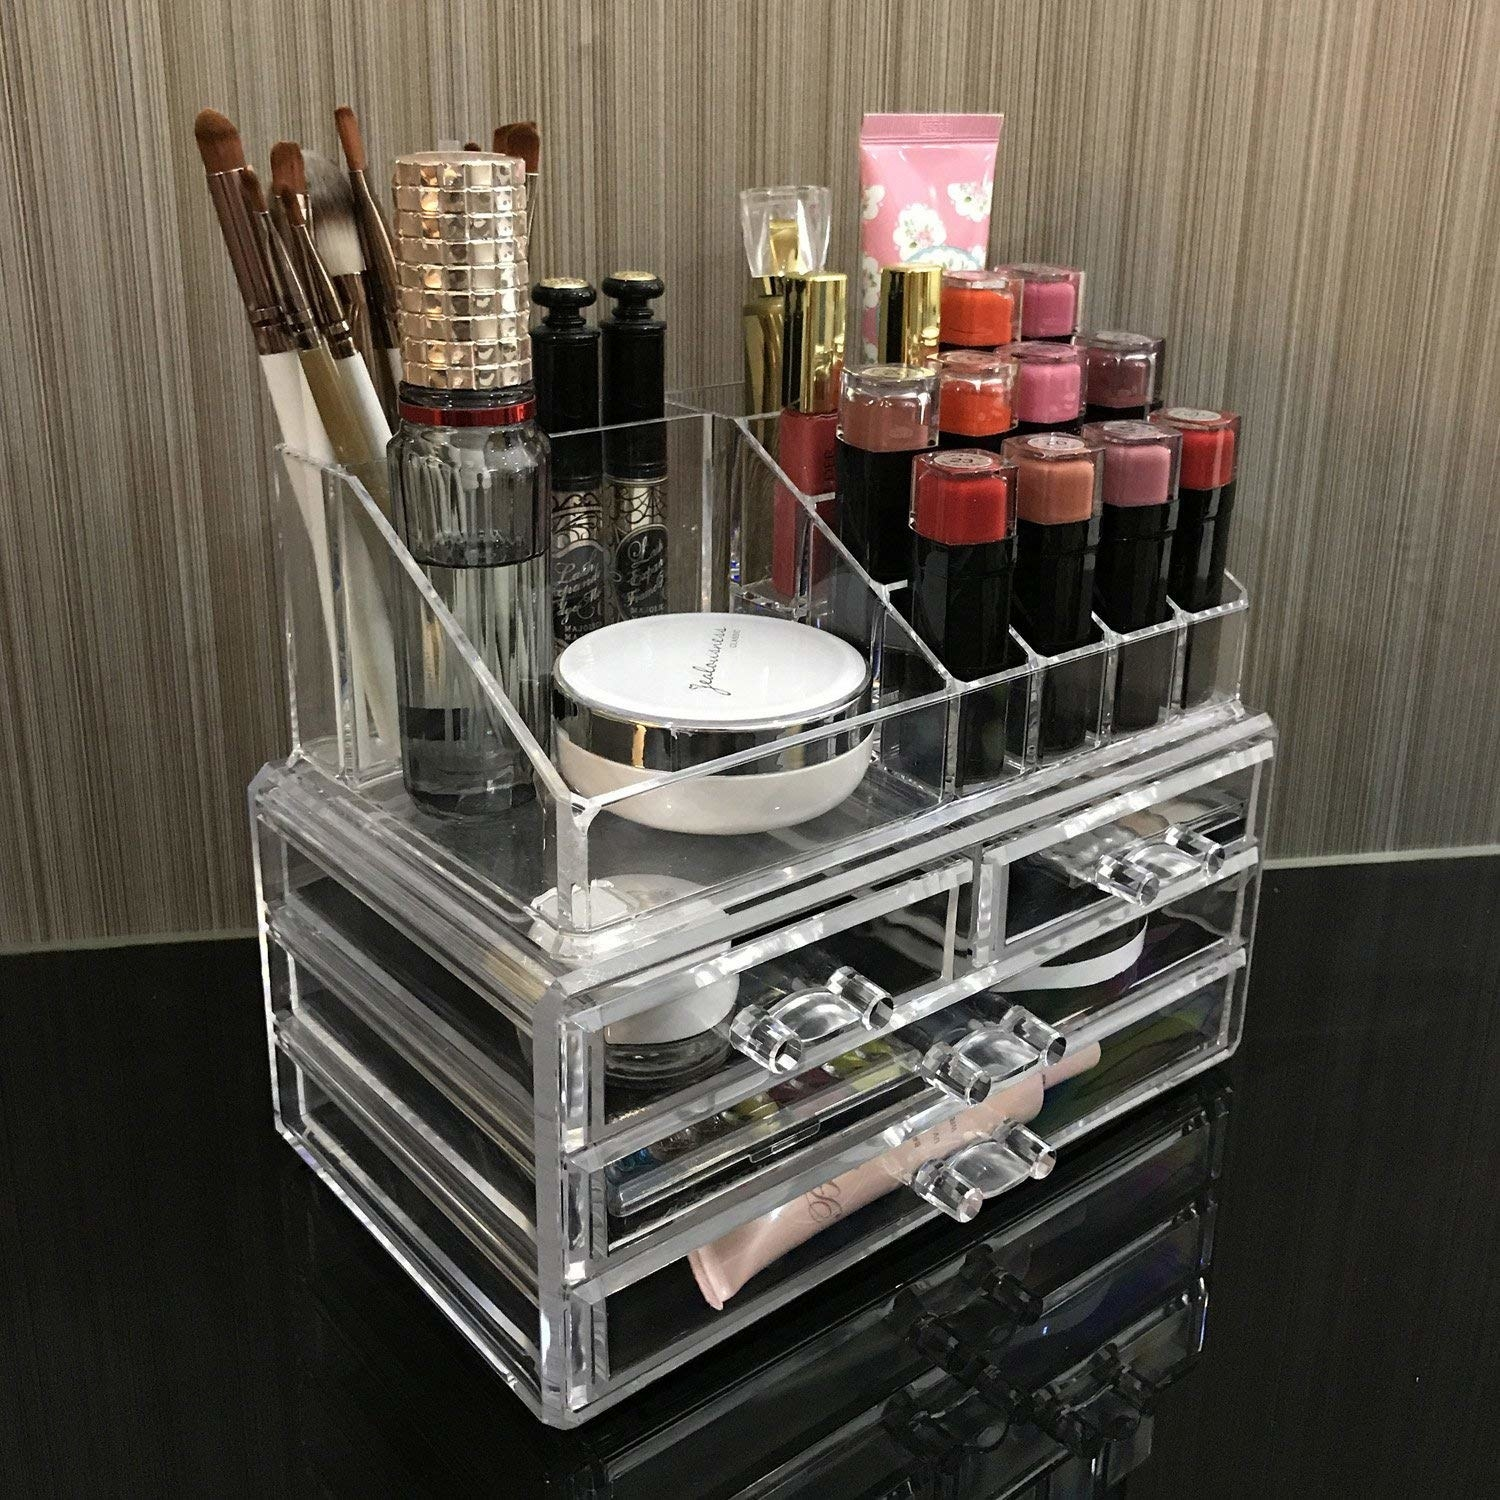 clear organizer with three drawers and lipstick and other storage on top